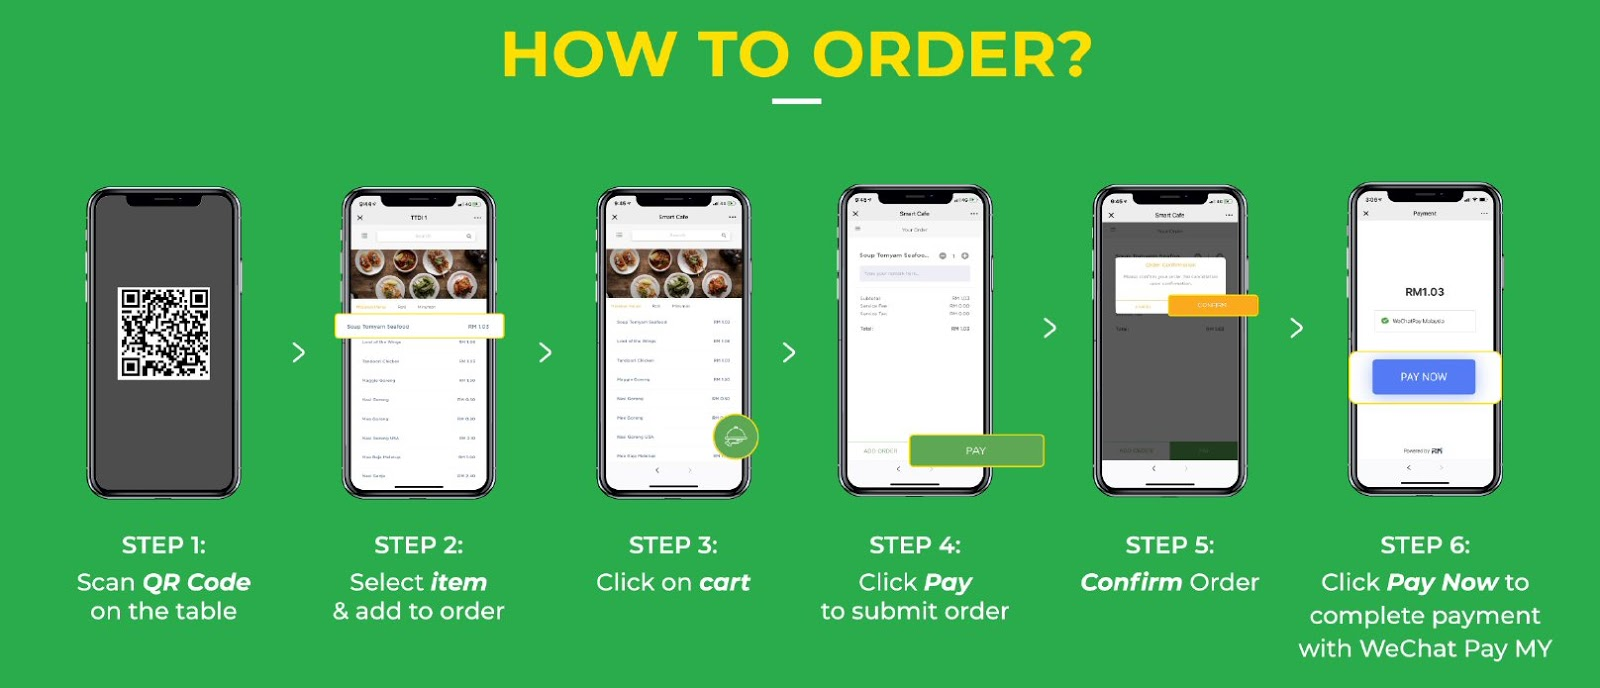 WeChat Pay MY introduces Smart Order for you to order & pay